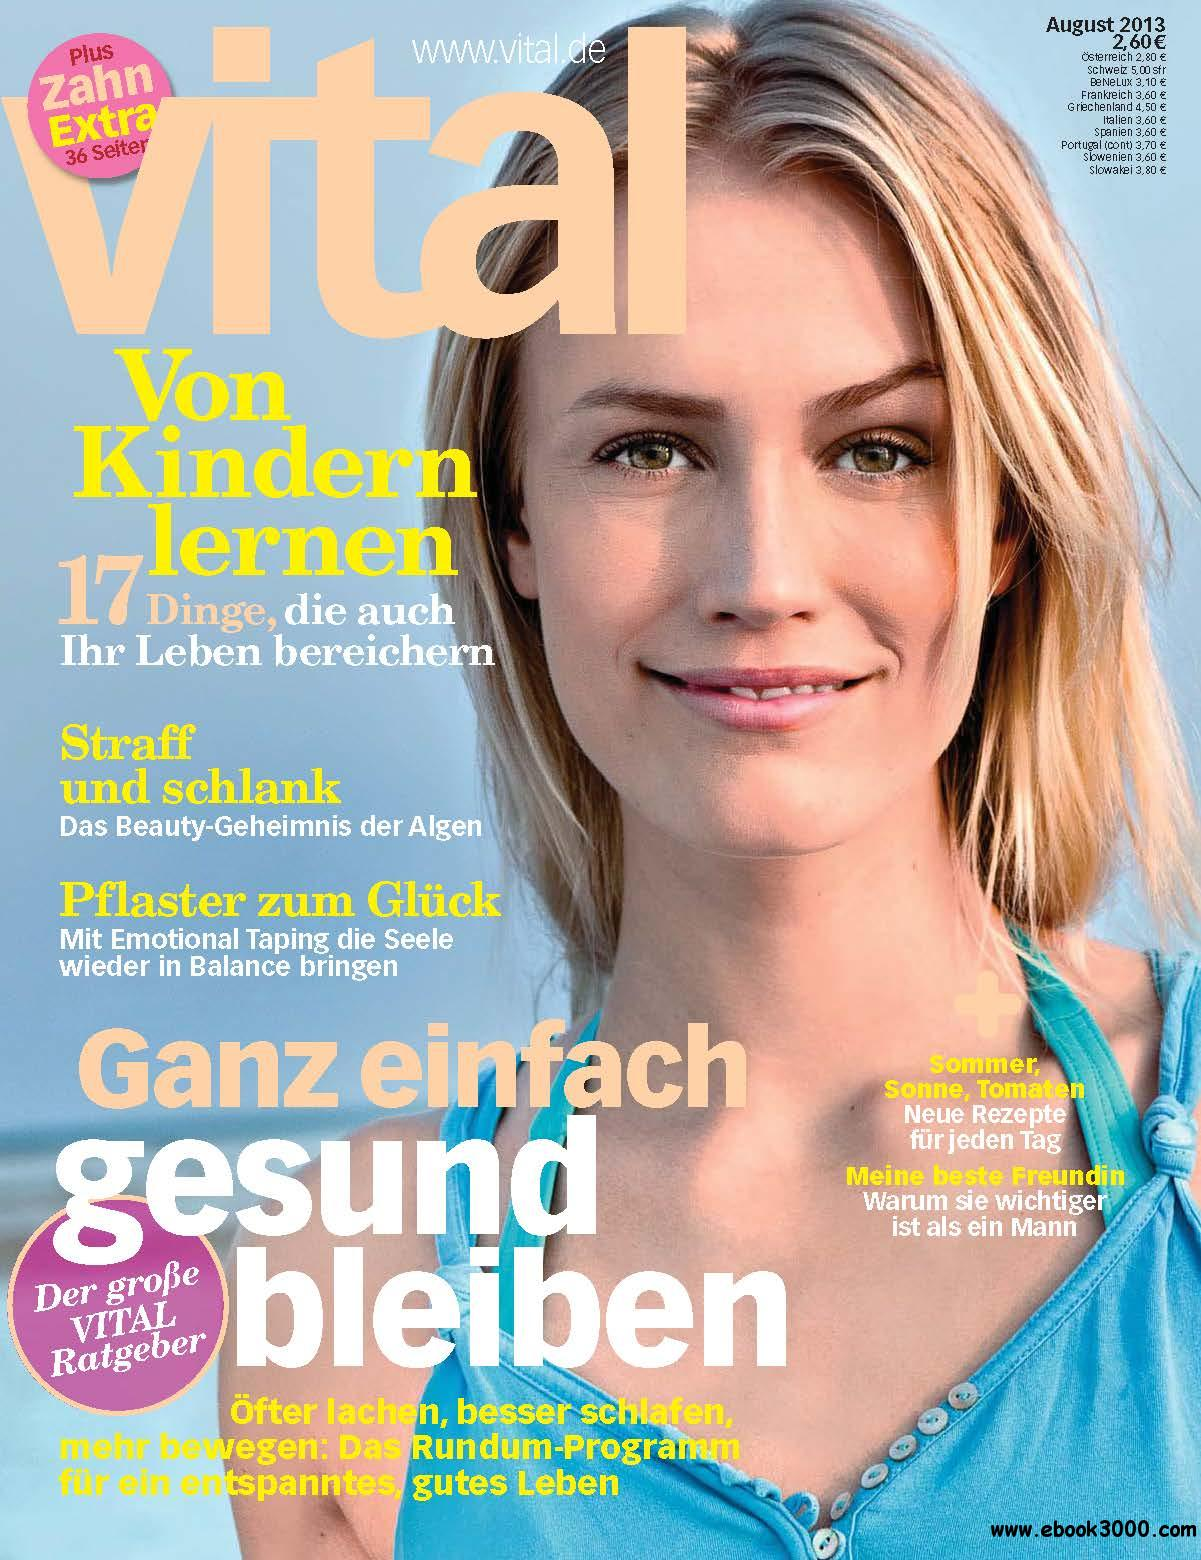 Vital (Wellness-Magazin) August 08/2013 free download